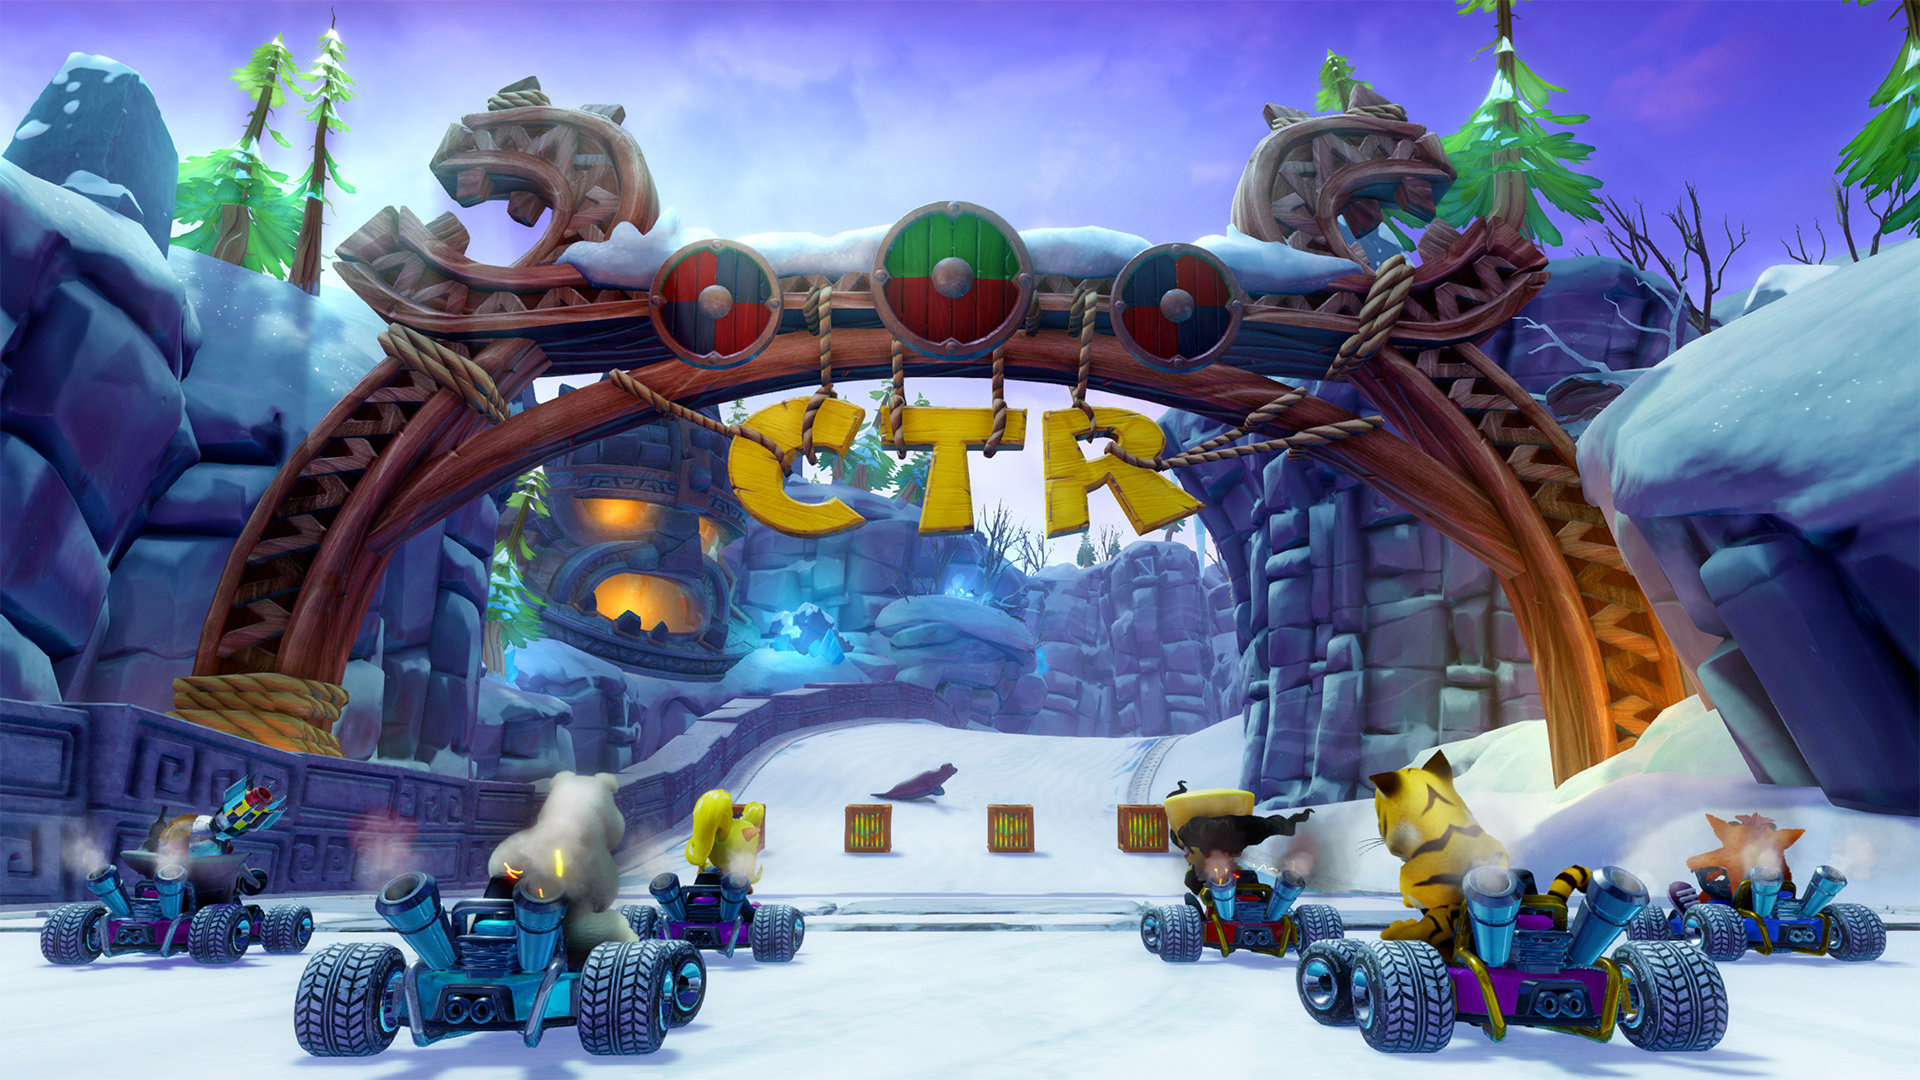 Hands On: Can Crash Team Racing Compete with Mario Kart 8